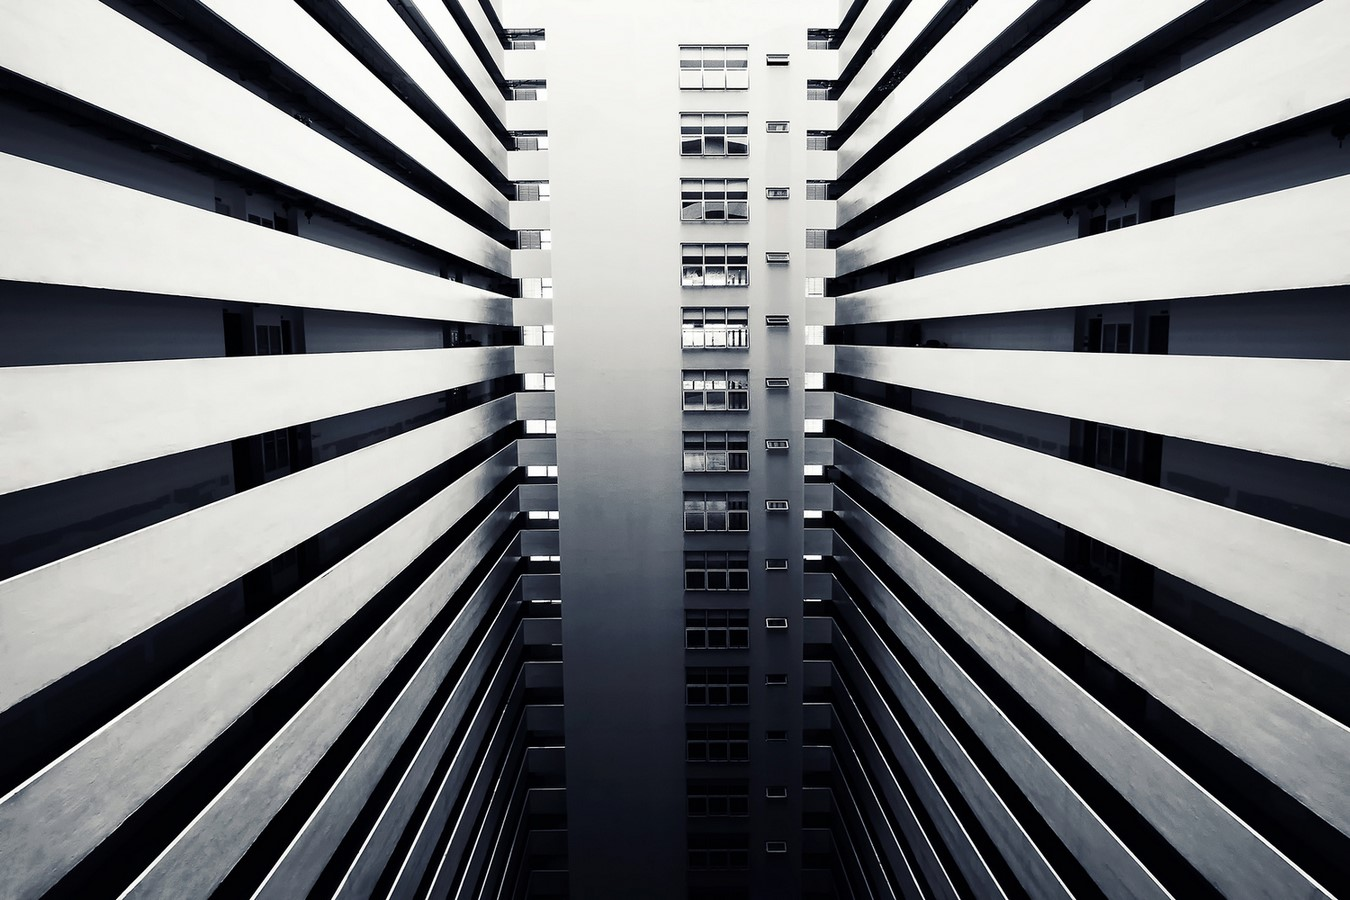 Architectural Photography: The art of capturing structures - Sheet3